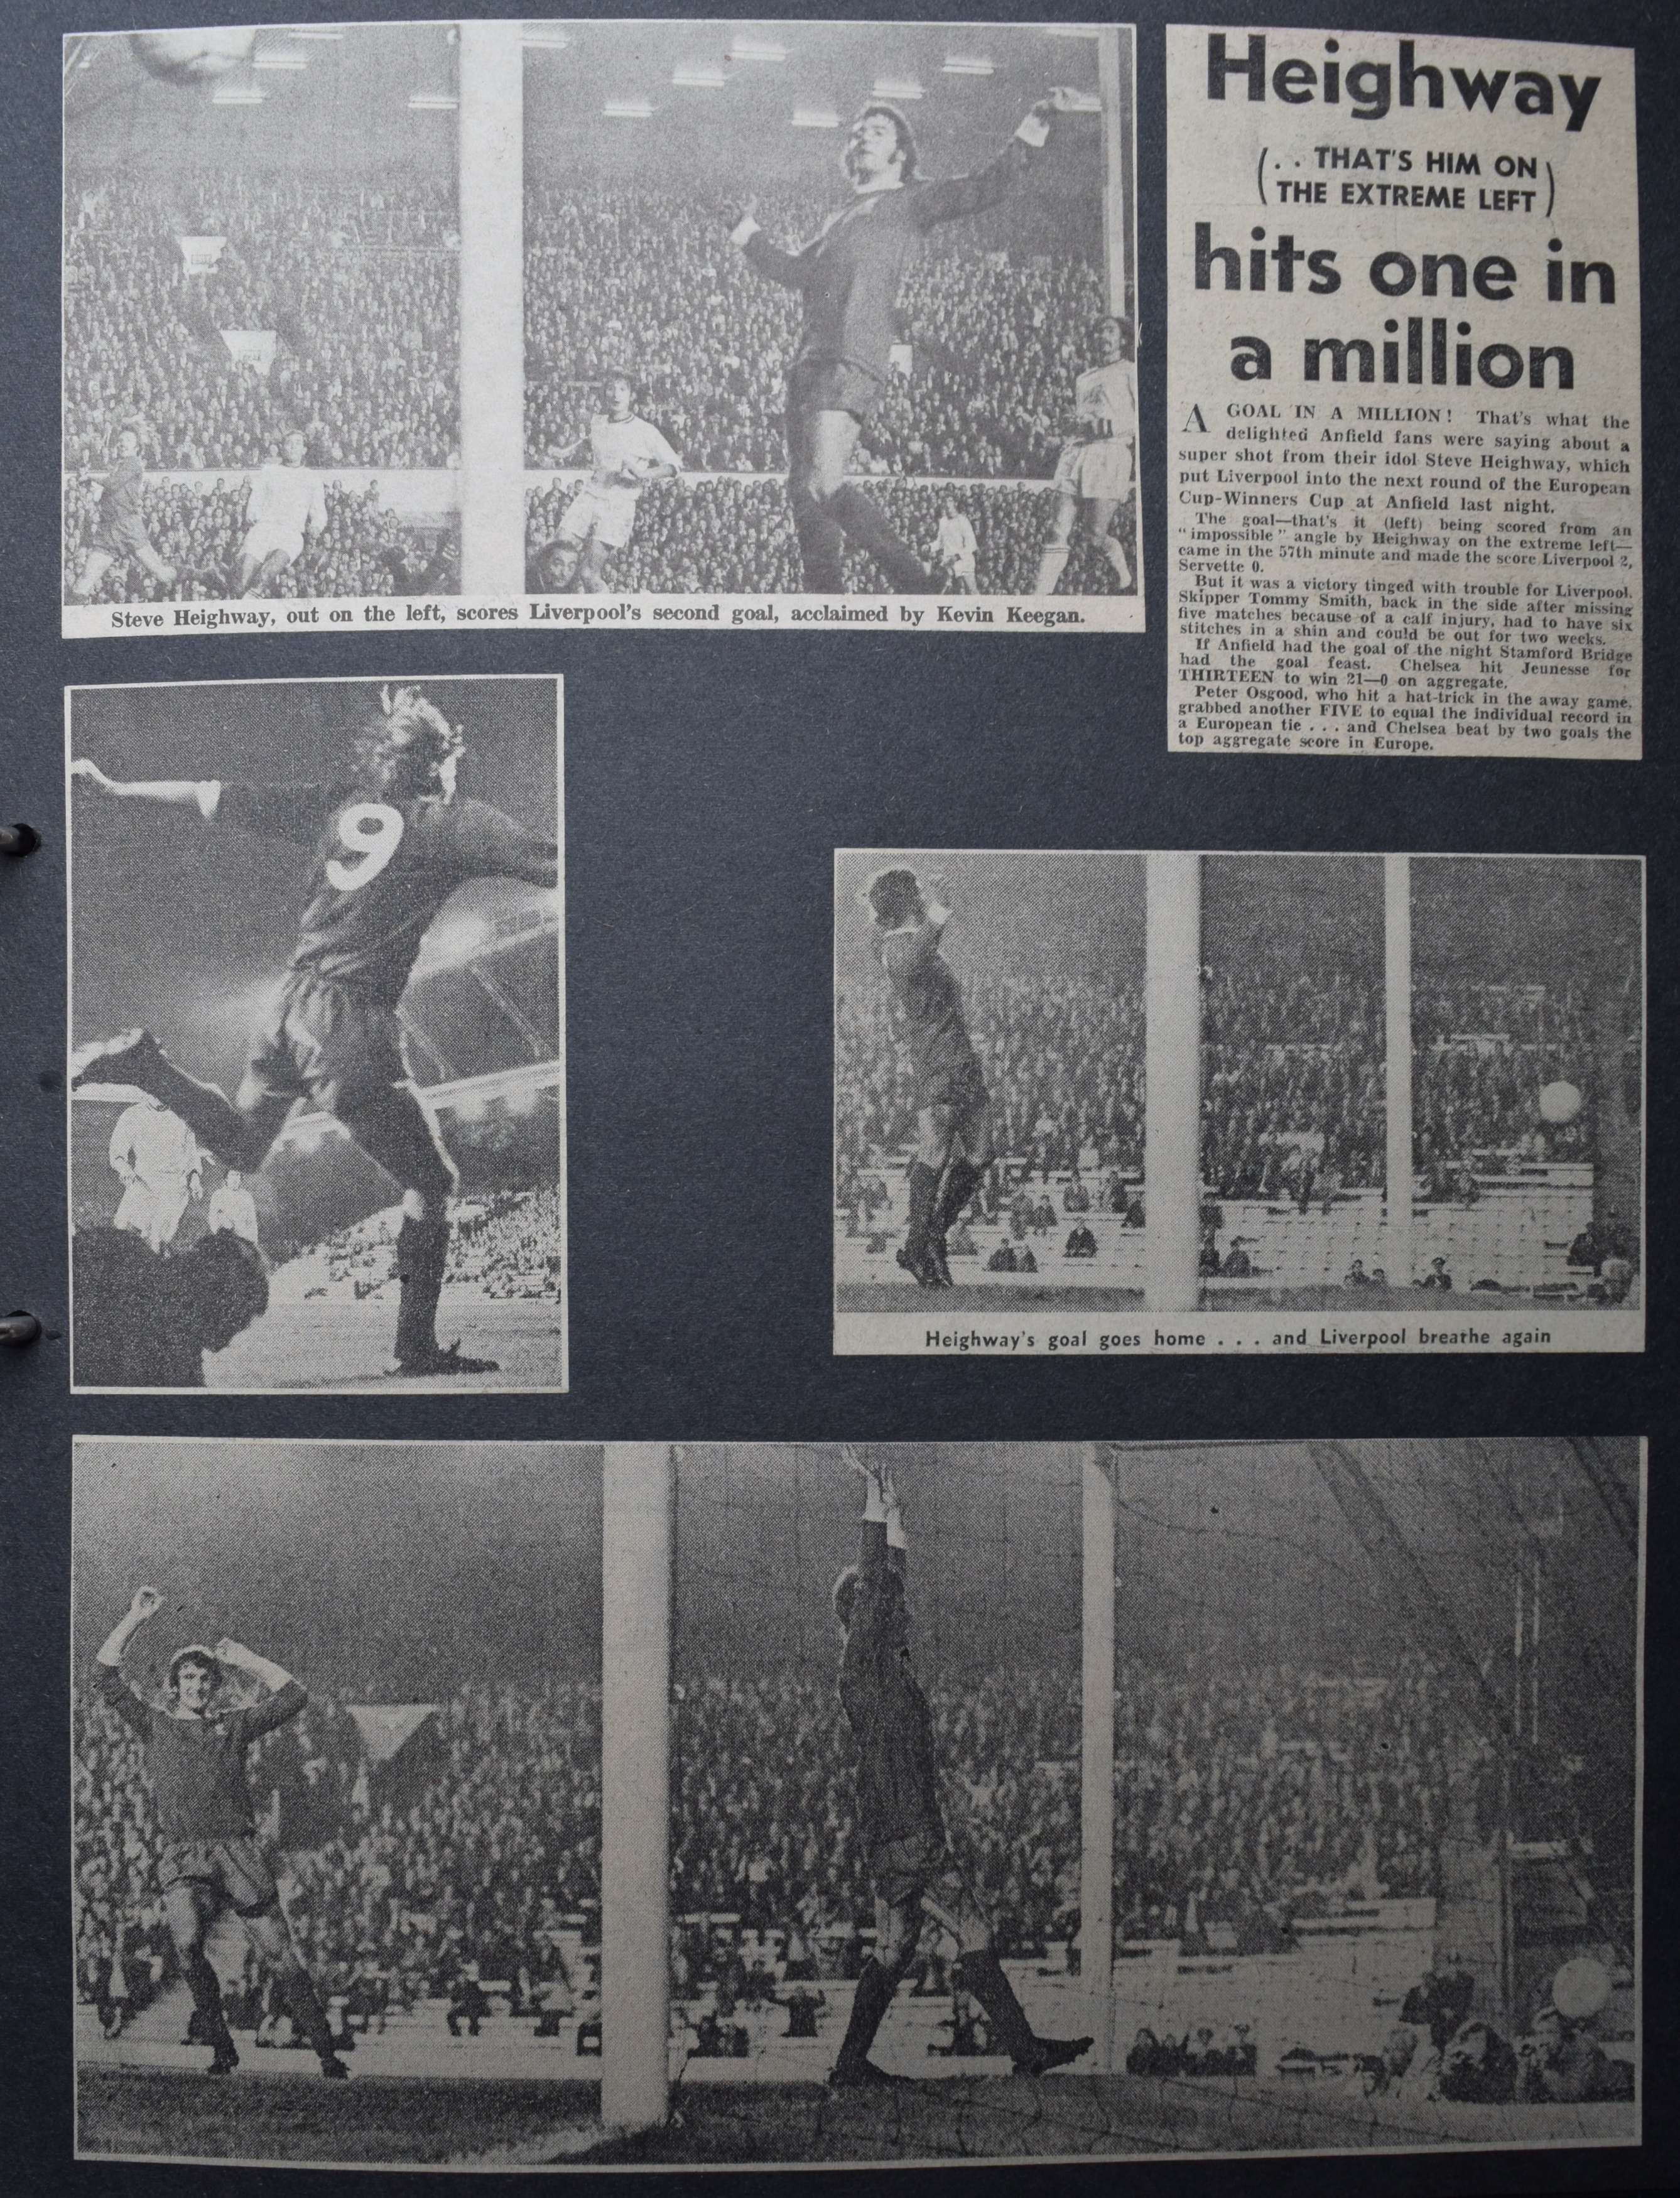 Heighway hits one in a million - 29 September 1971